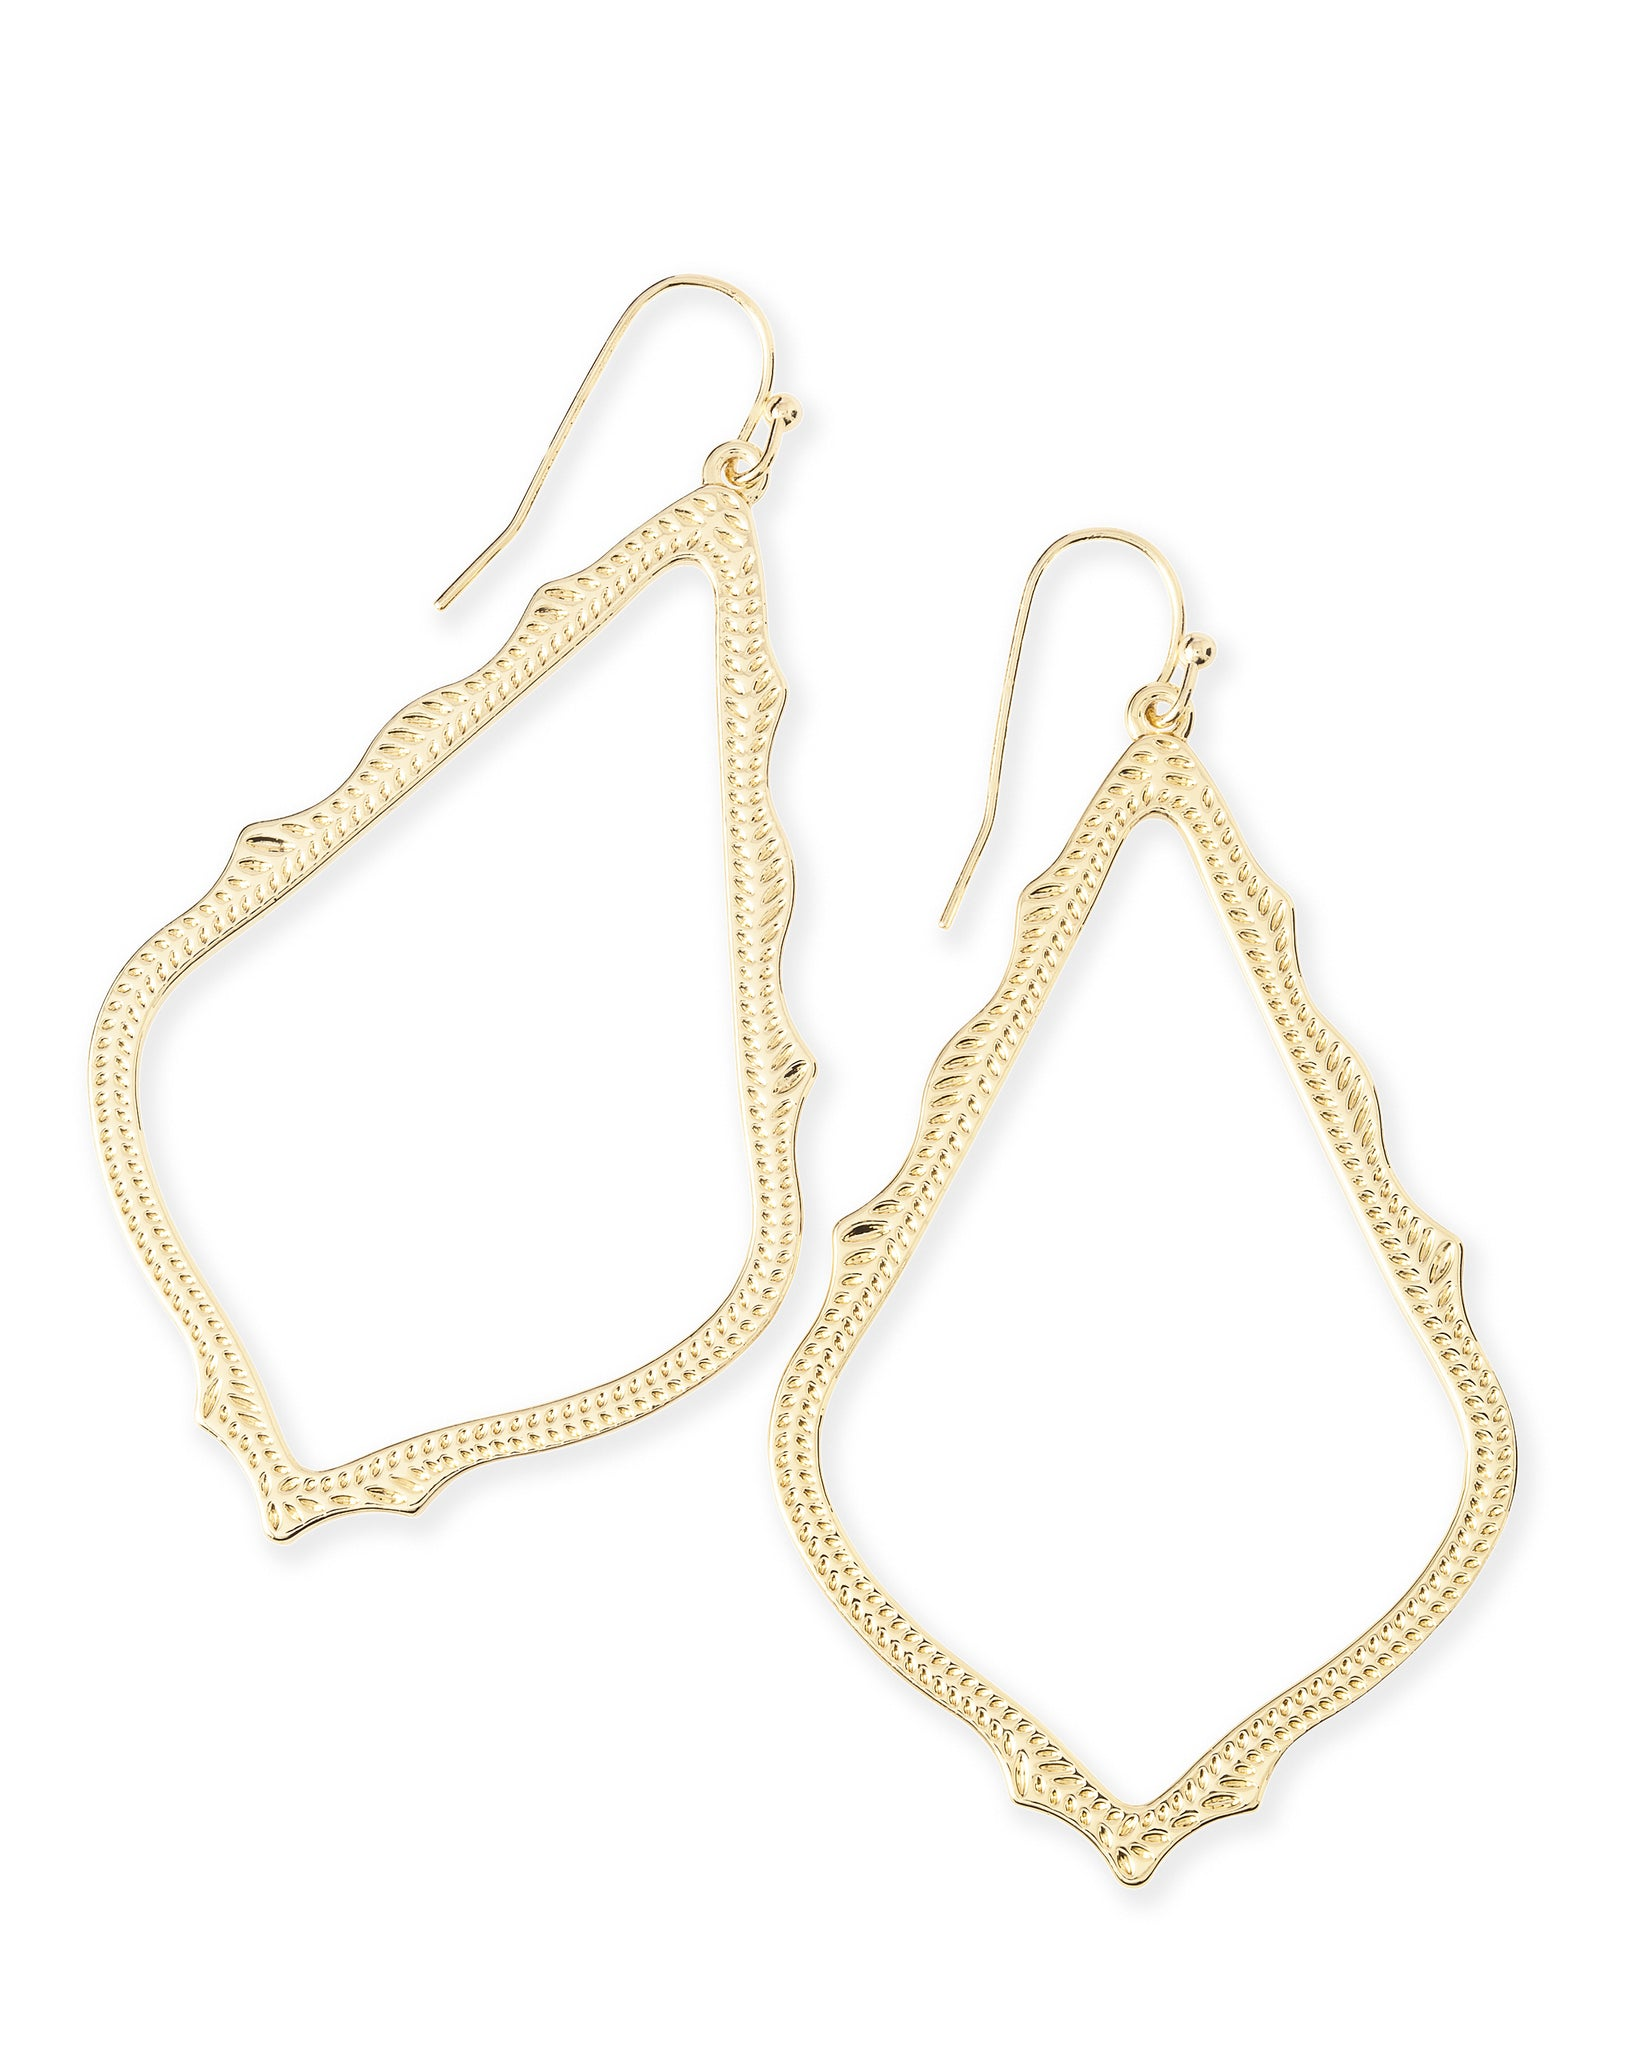 Kendra Scott Sophee Earring - Showroom56